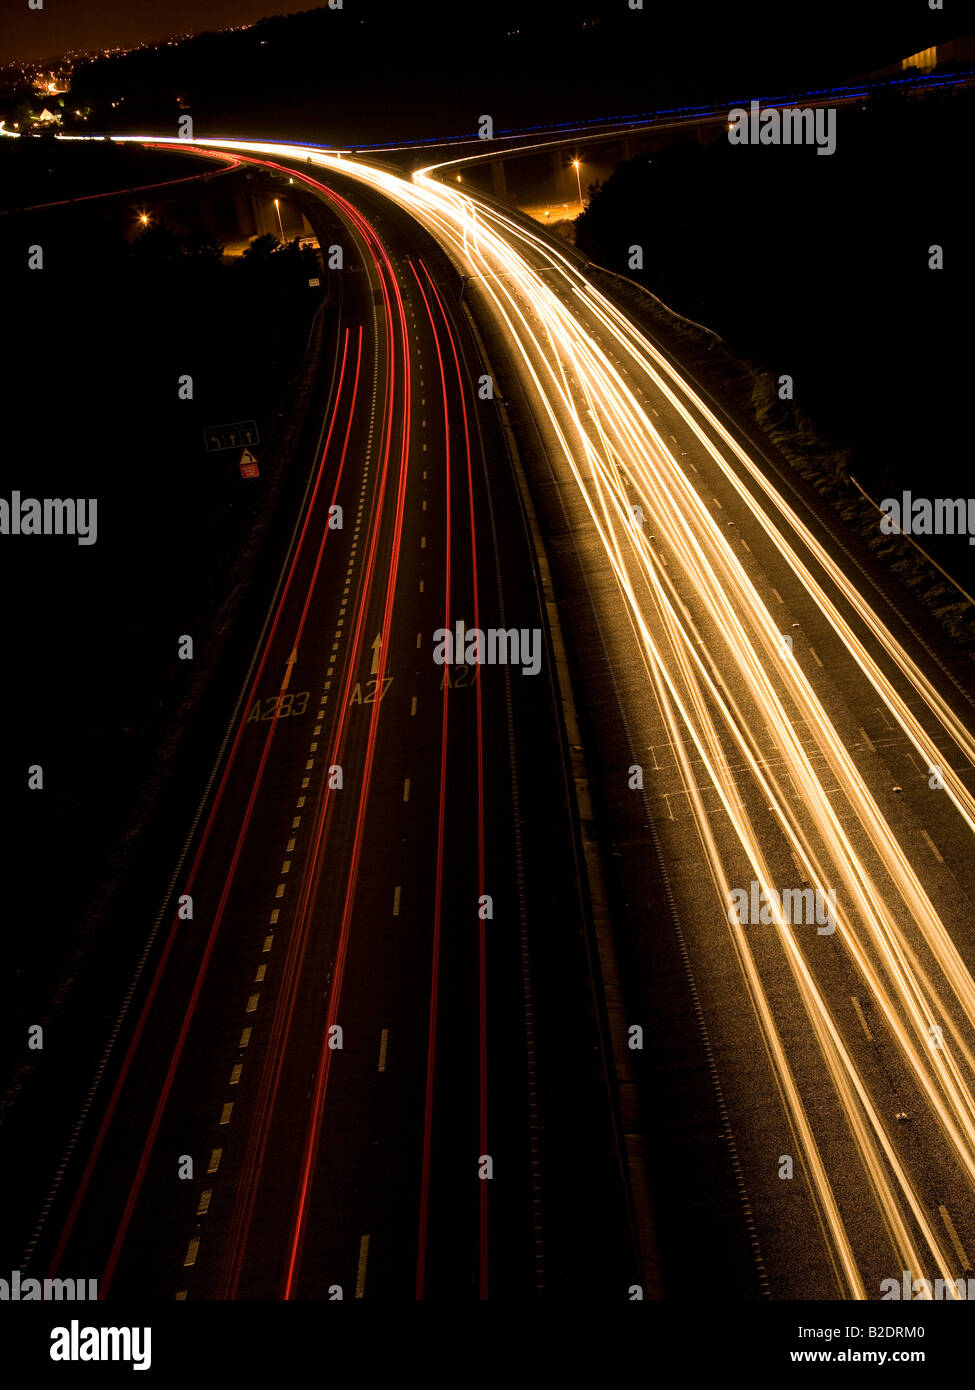 Traffic trails on the A27, Shoreham flyover, Sussex, England, UK Stock Photo